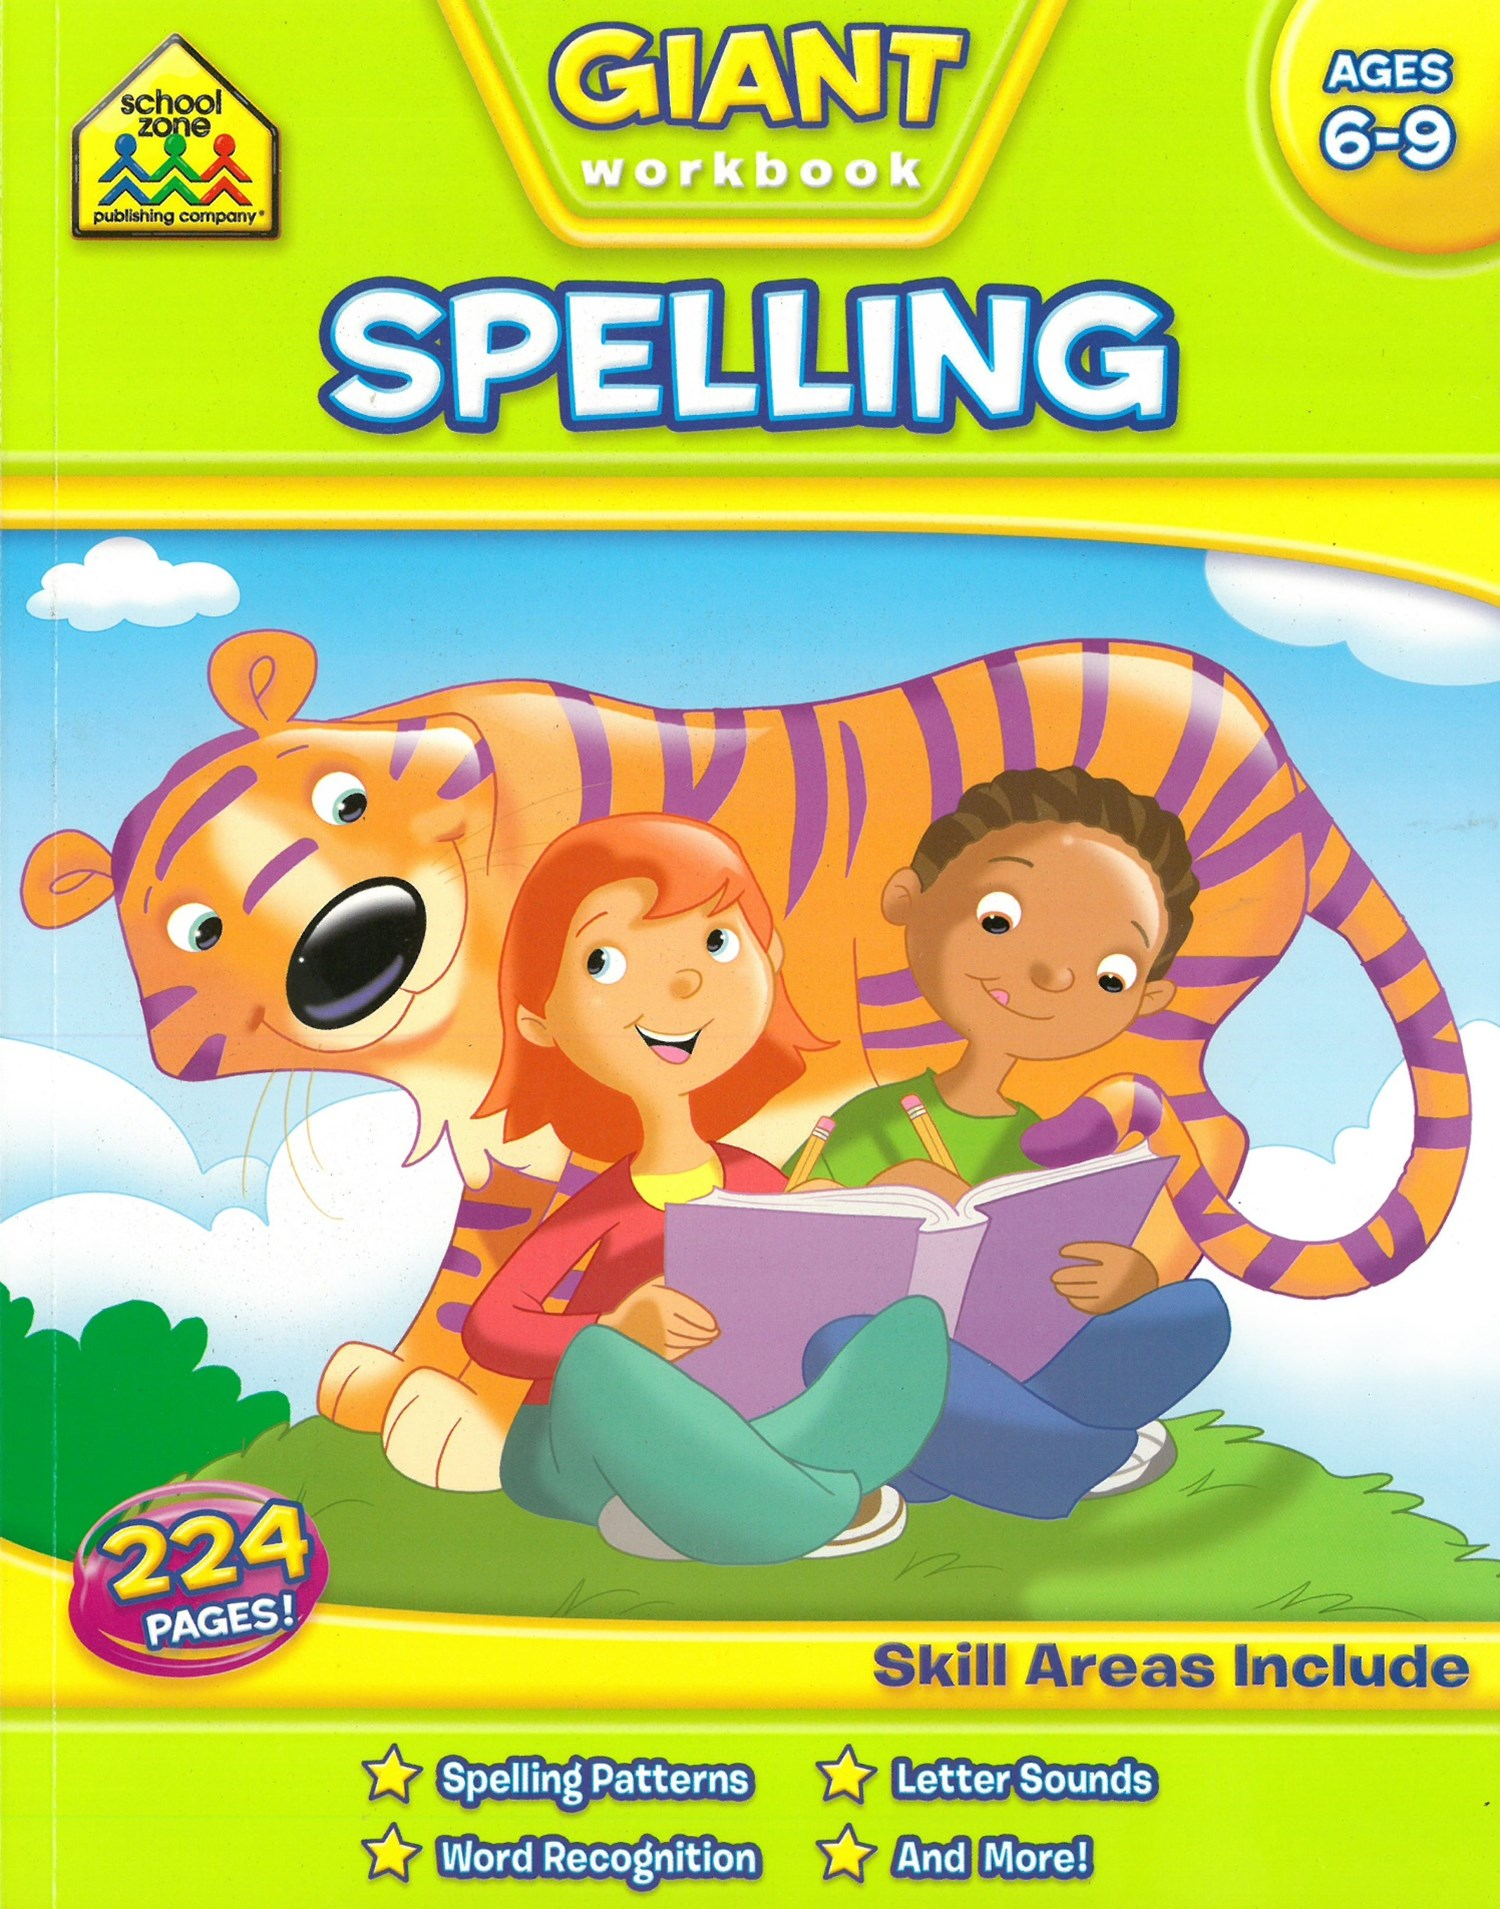 Giant Spelling Workbook 2-4